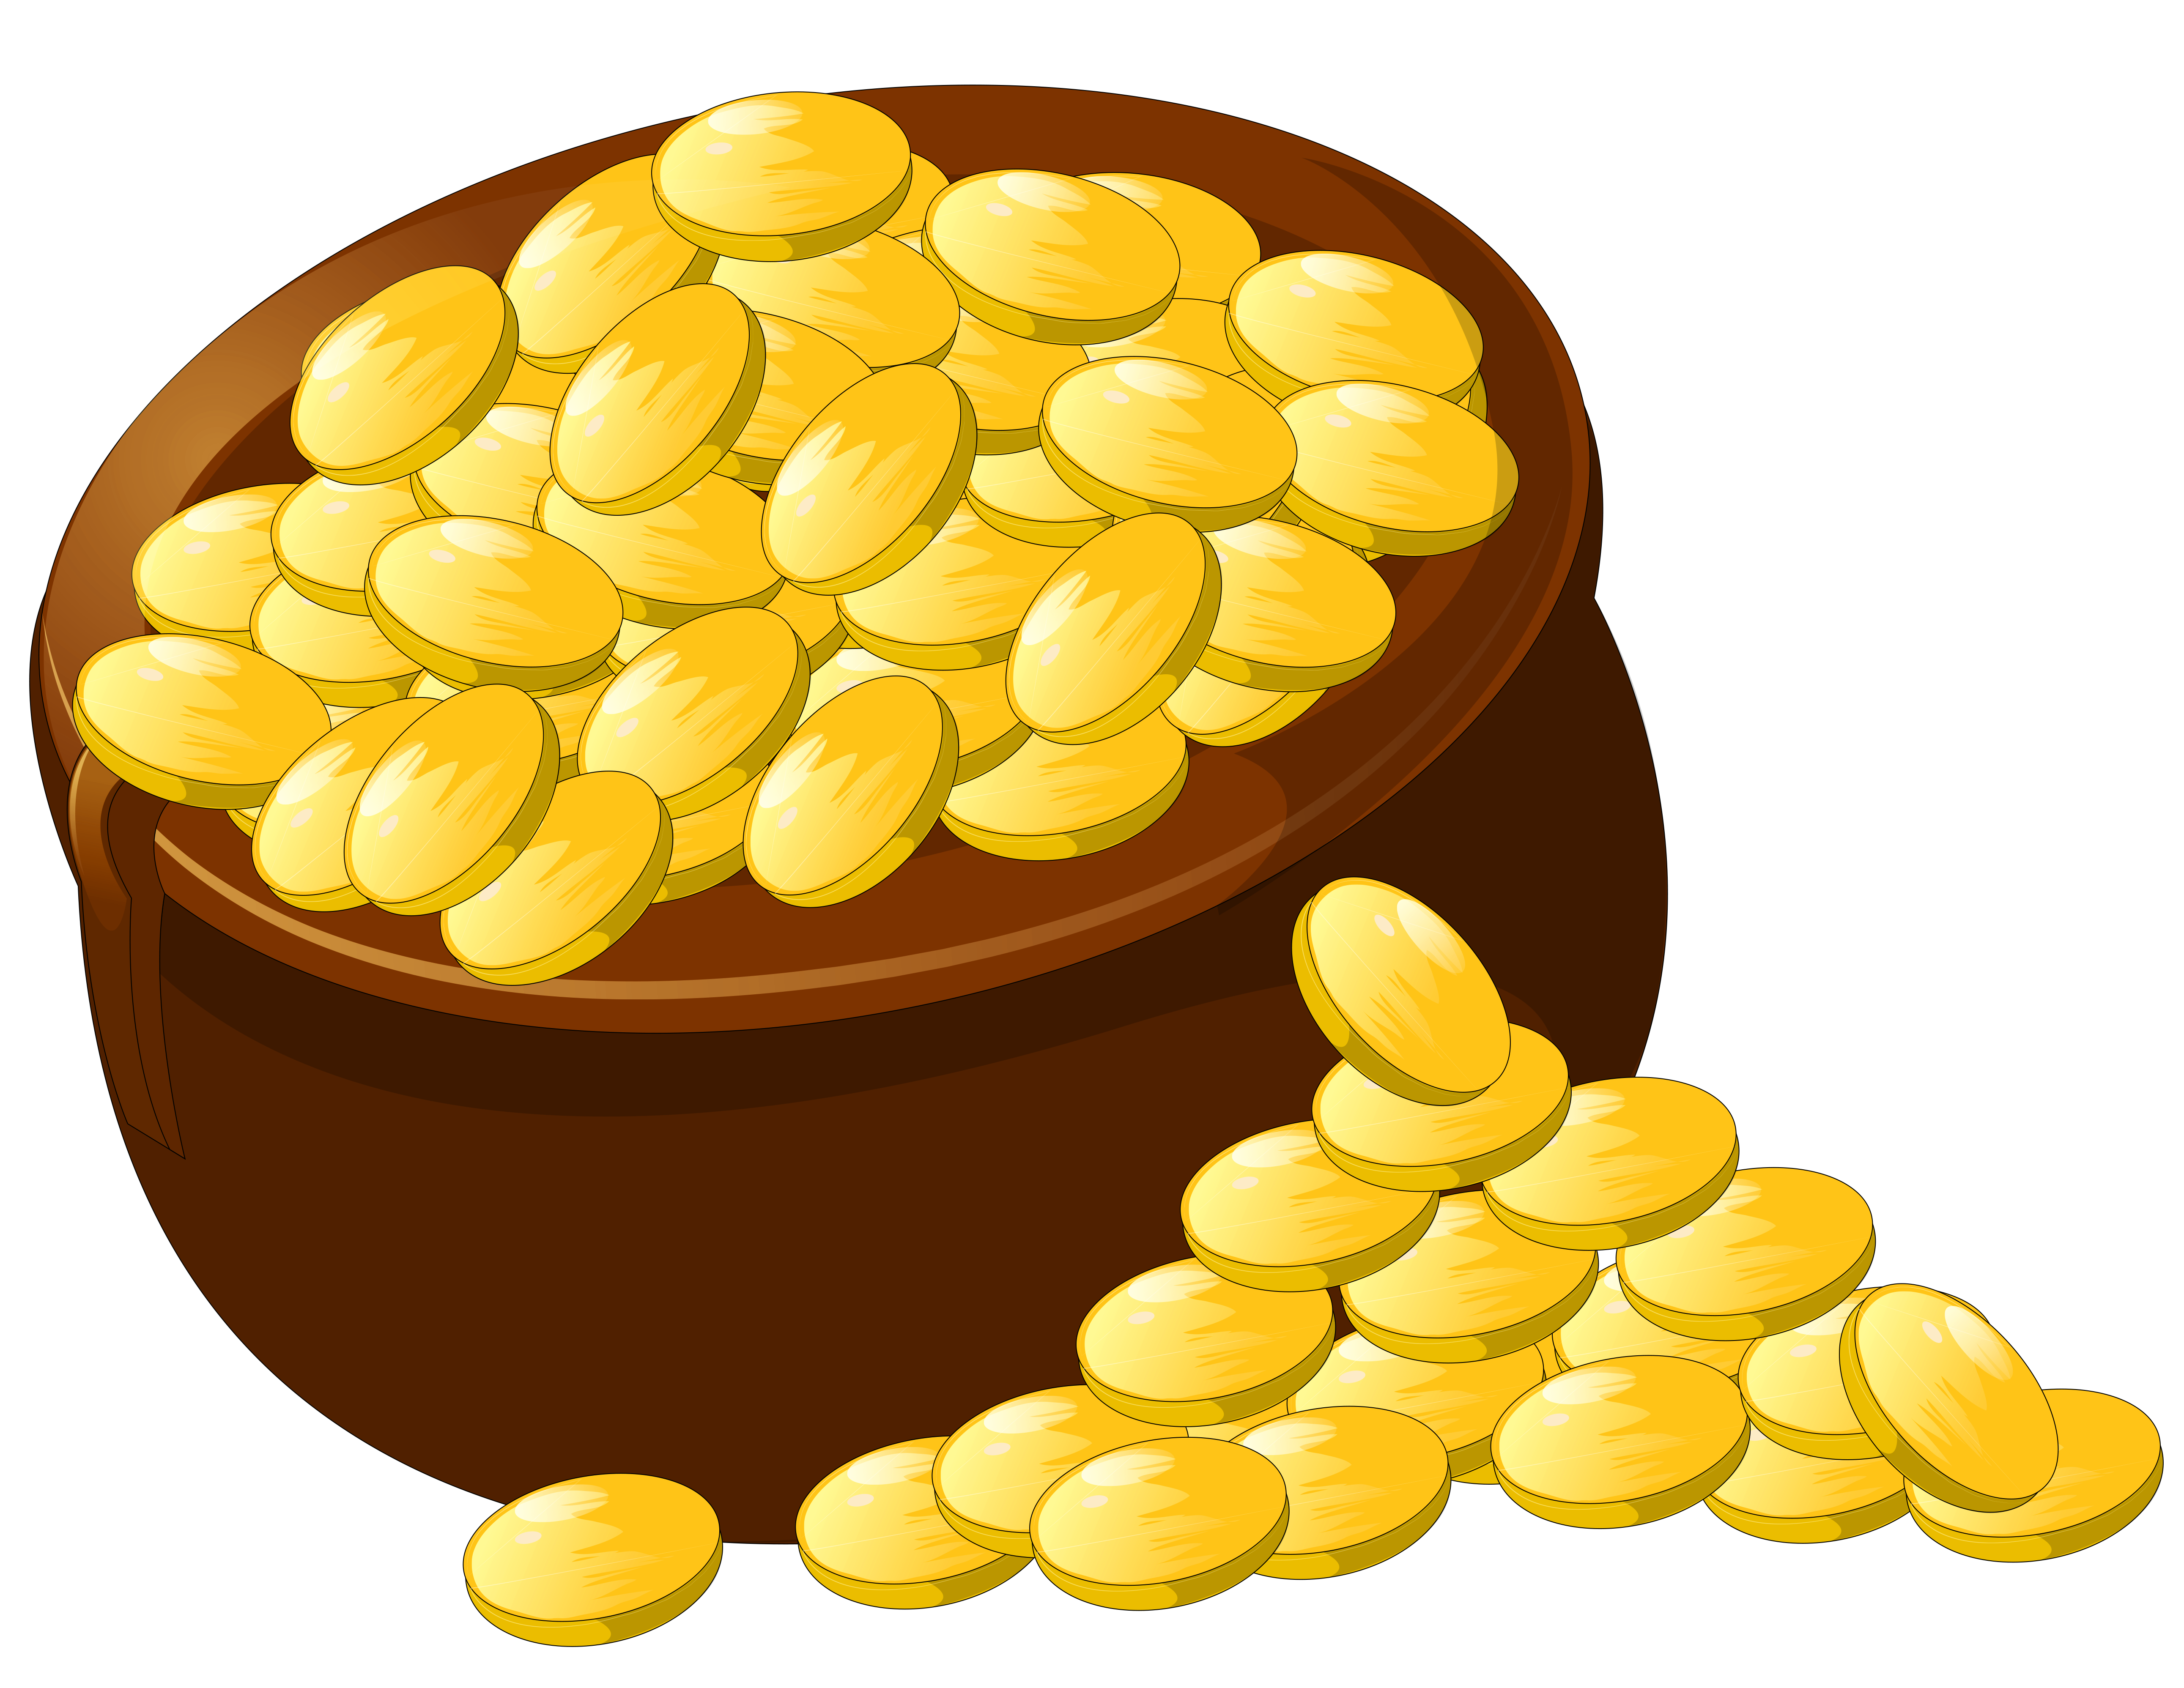 Gold clipart - Clipground